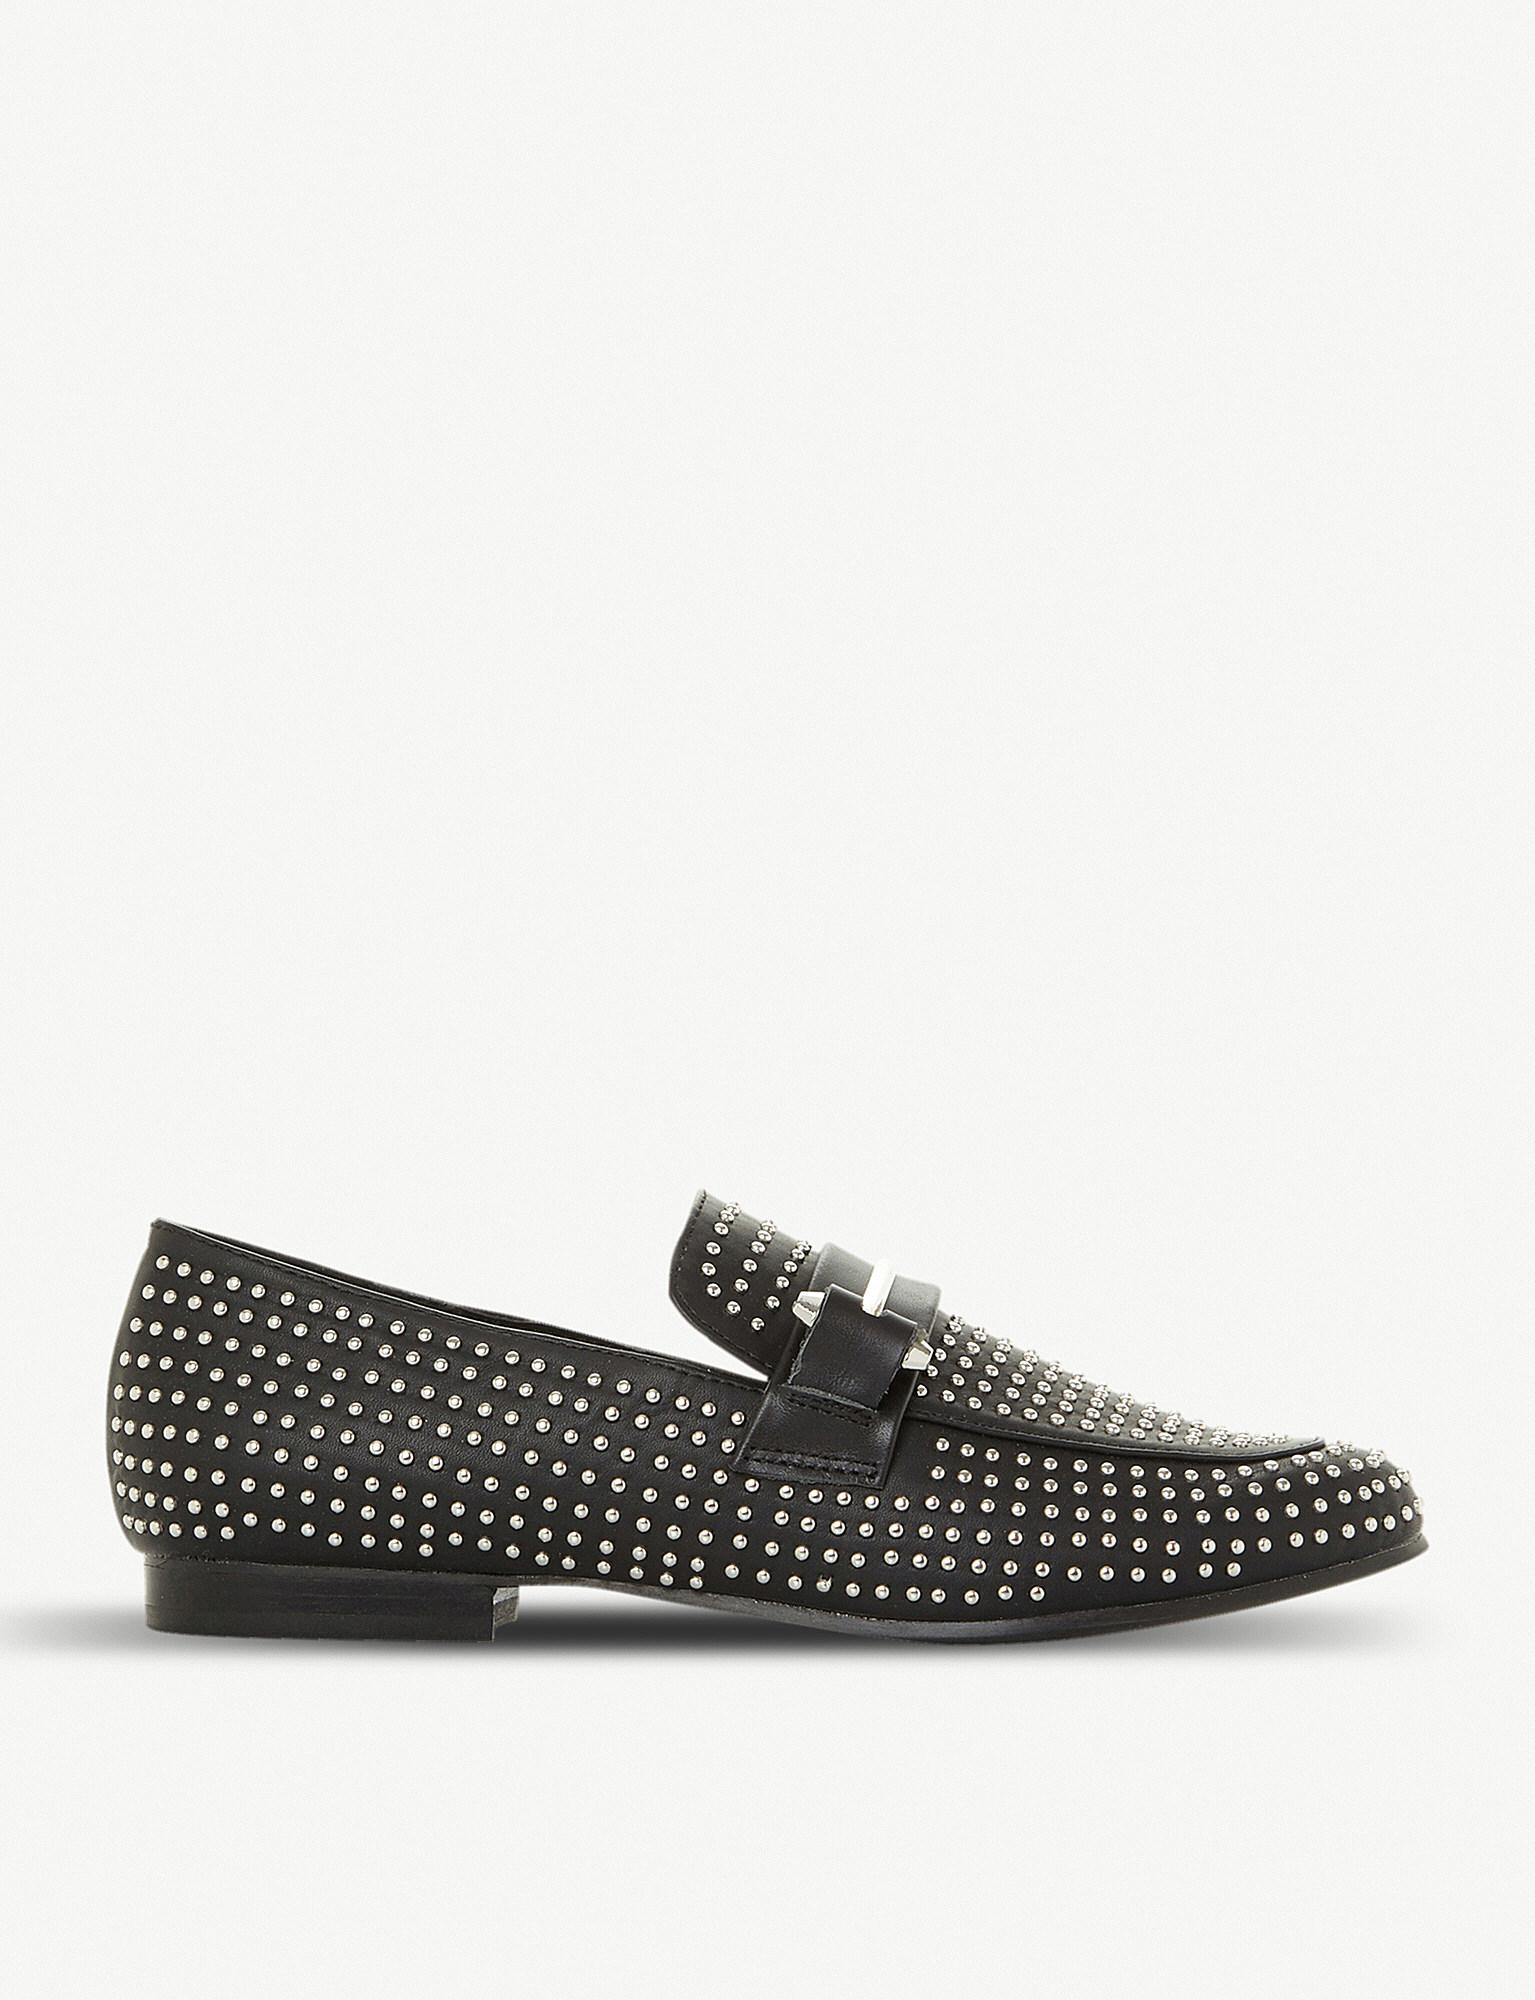 Steve Madden Kast Leather Loafers Huge Surprise Official Site Cheap Price zUJht